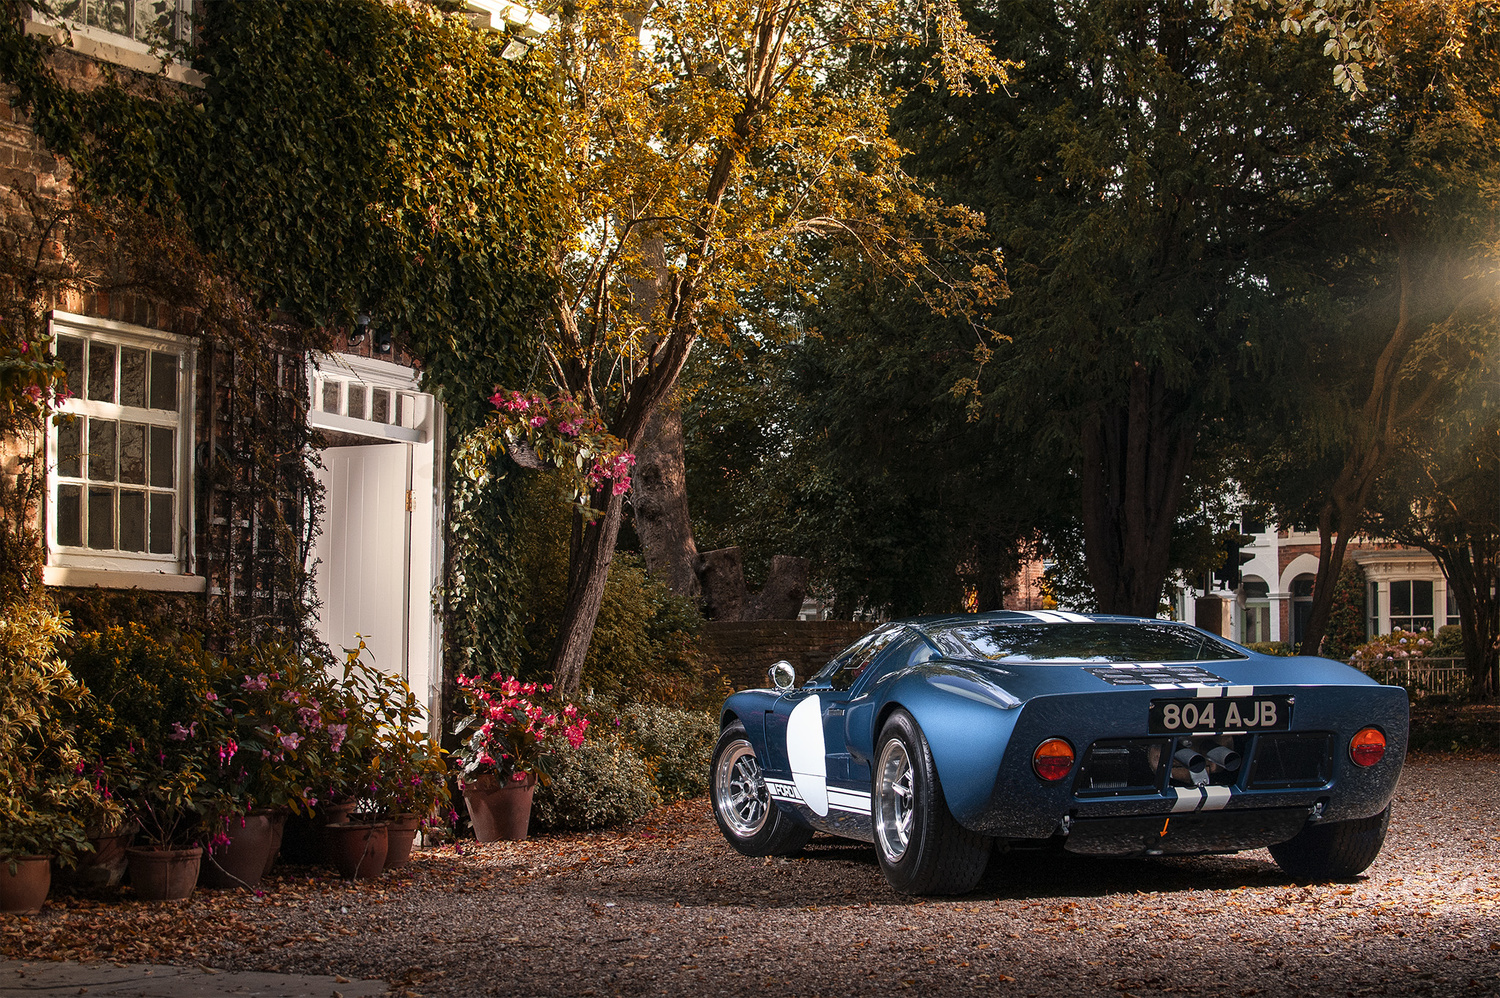 GT40 by Graham Taylor